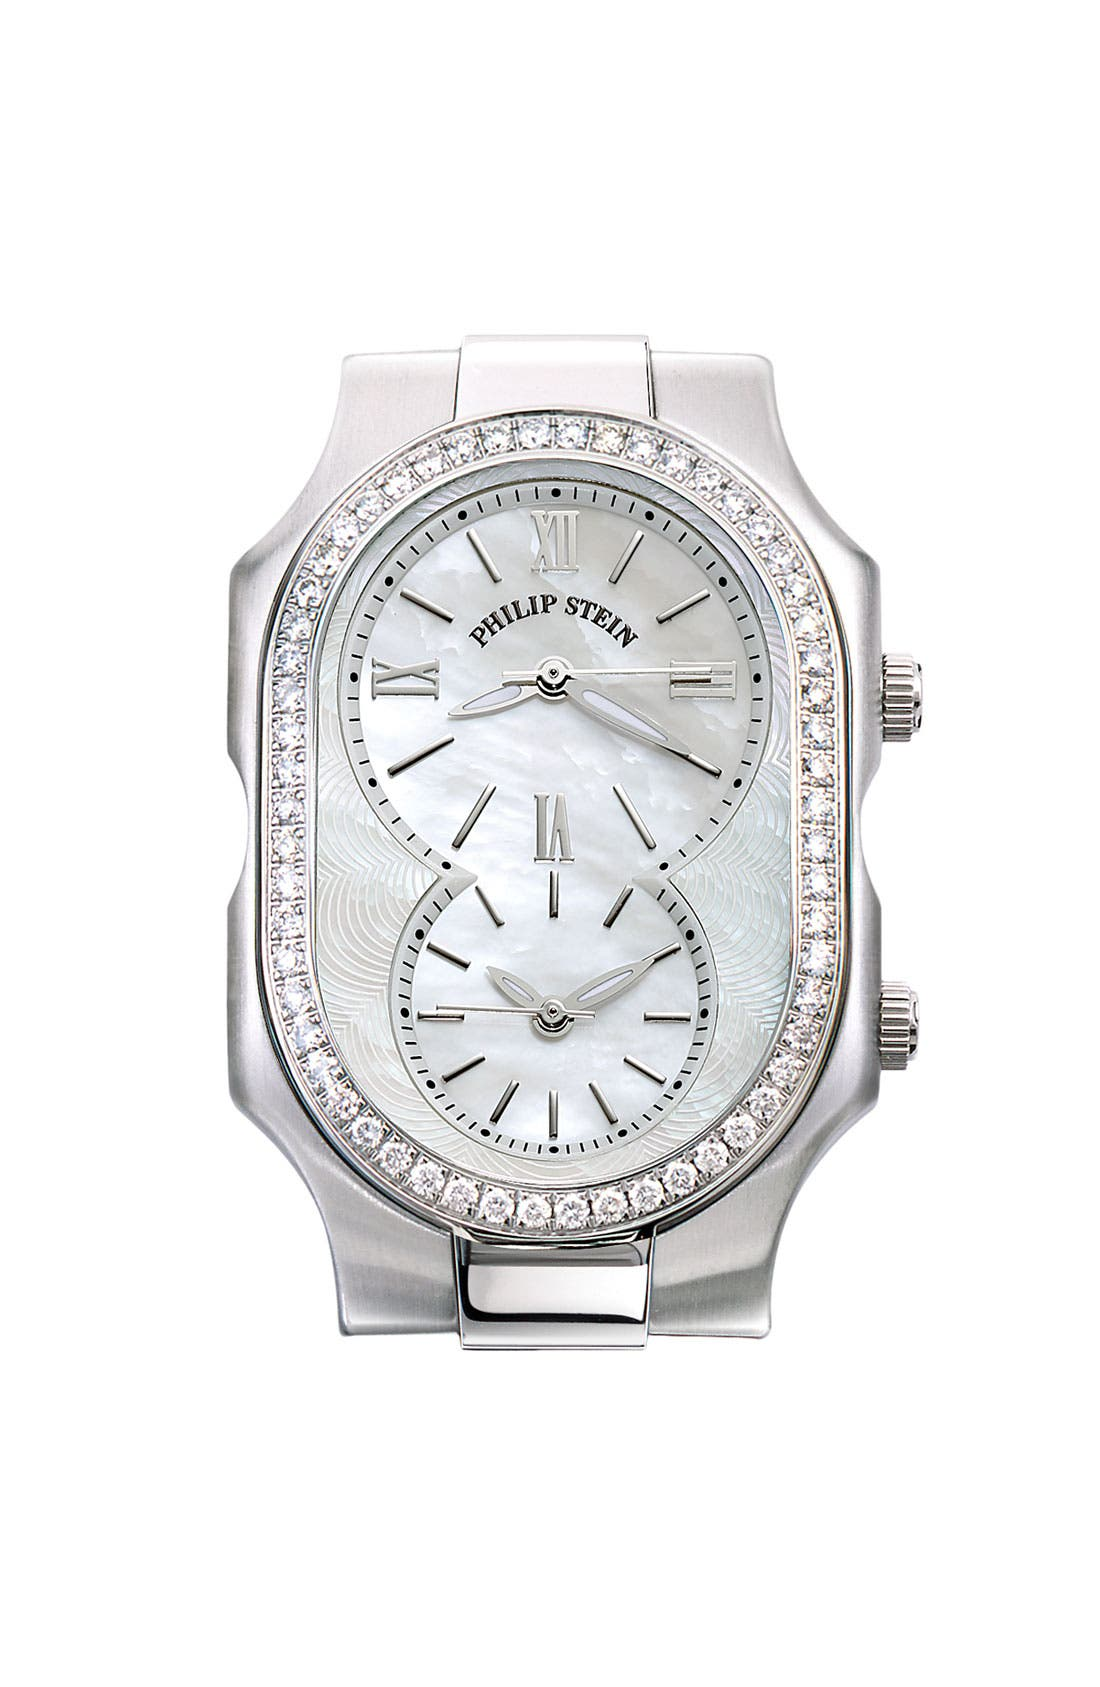 Alternate Image 1 Selected - Philip Stein® 'Signature' Large Diamond Watch Case